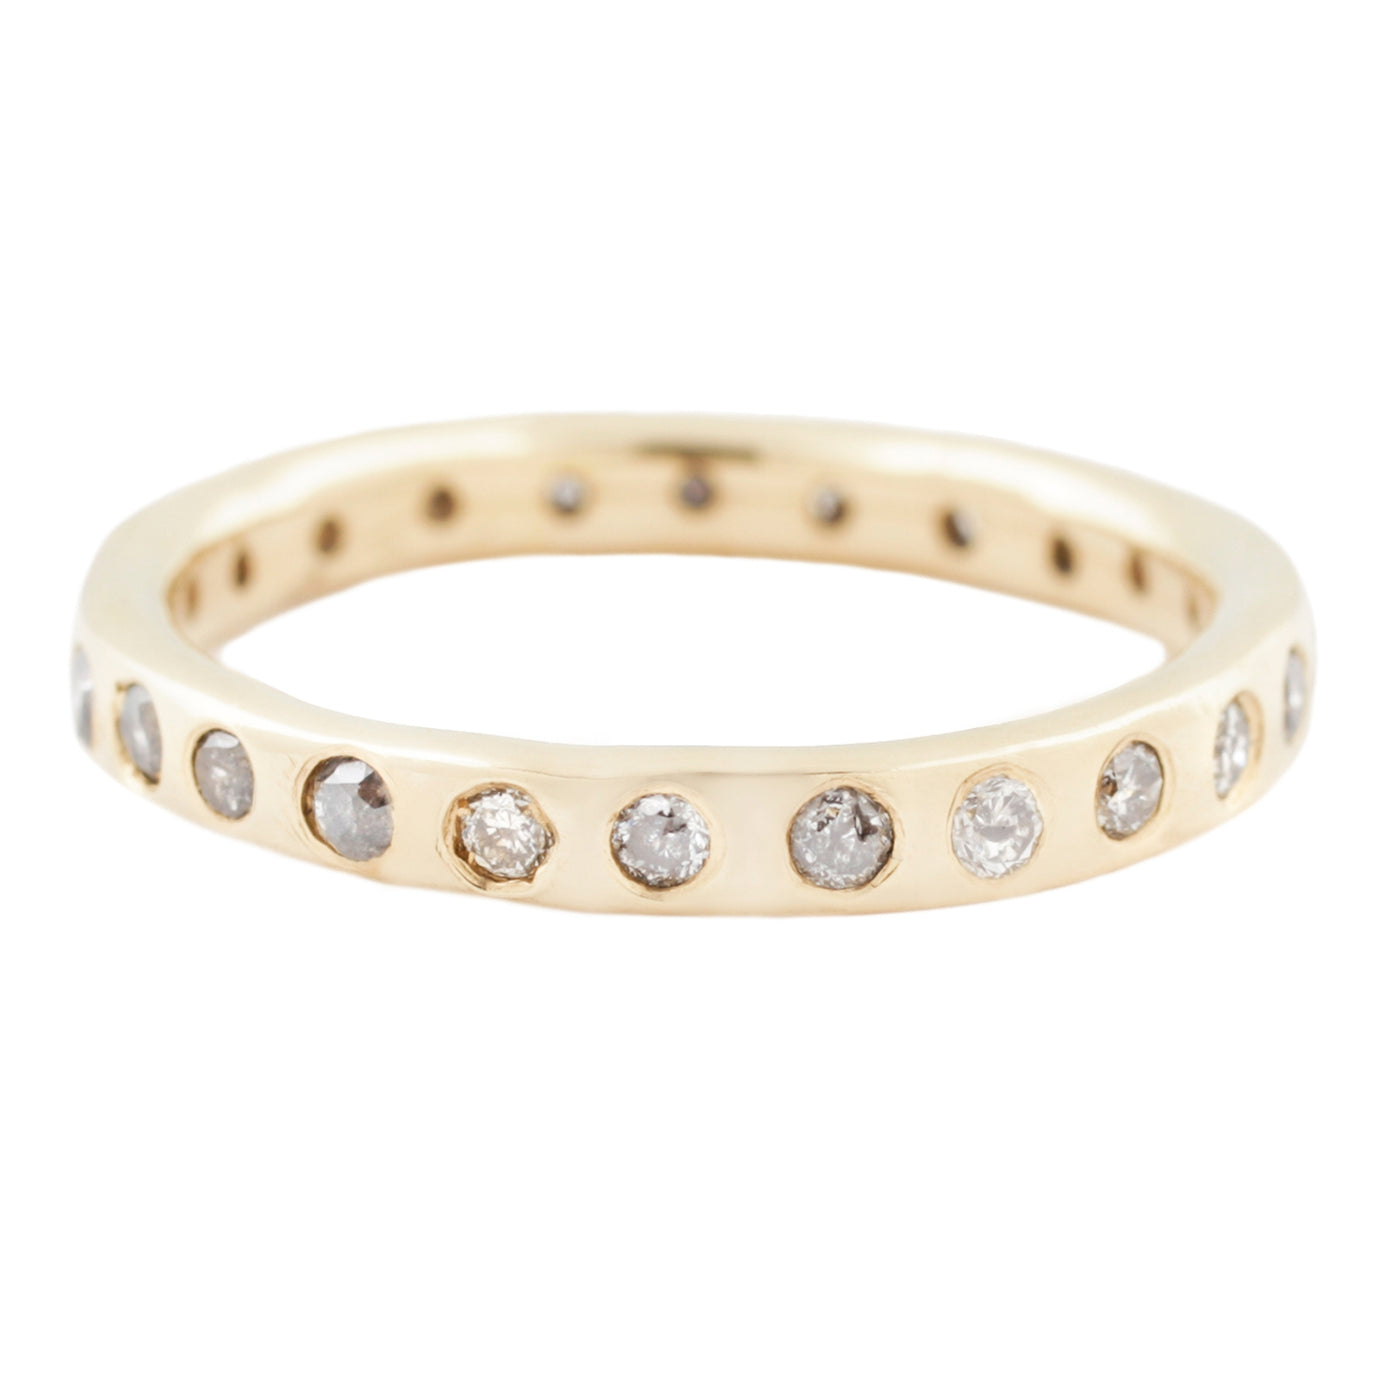 Lauren Wolf Jewelry Gray Diamond Eternity Band in Yellow Gold